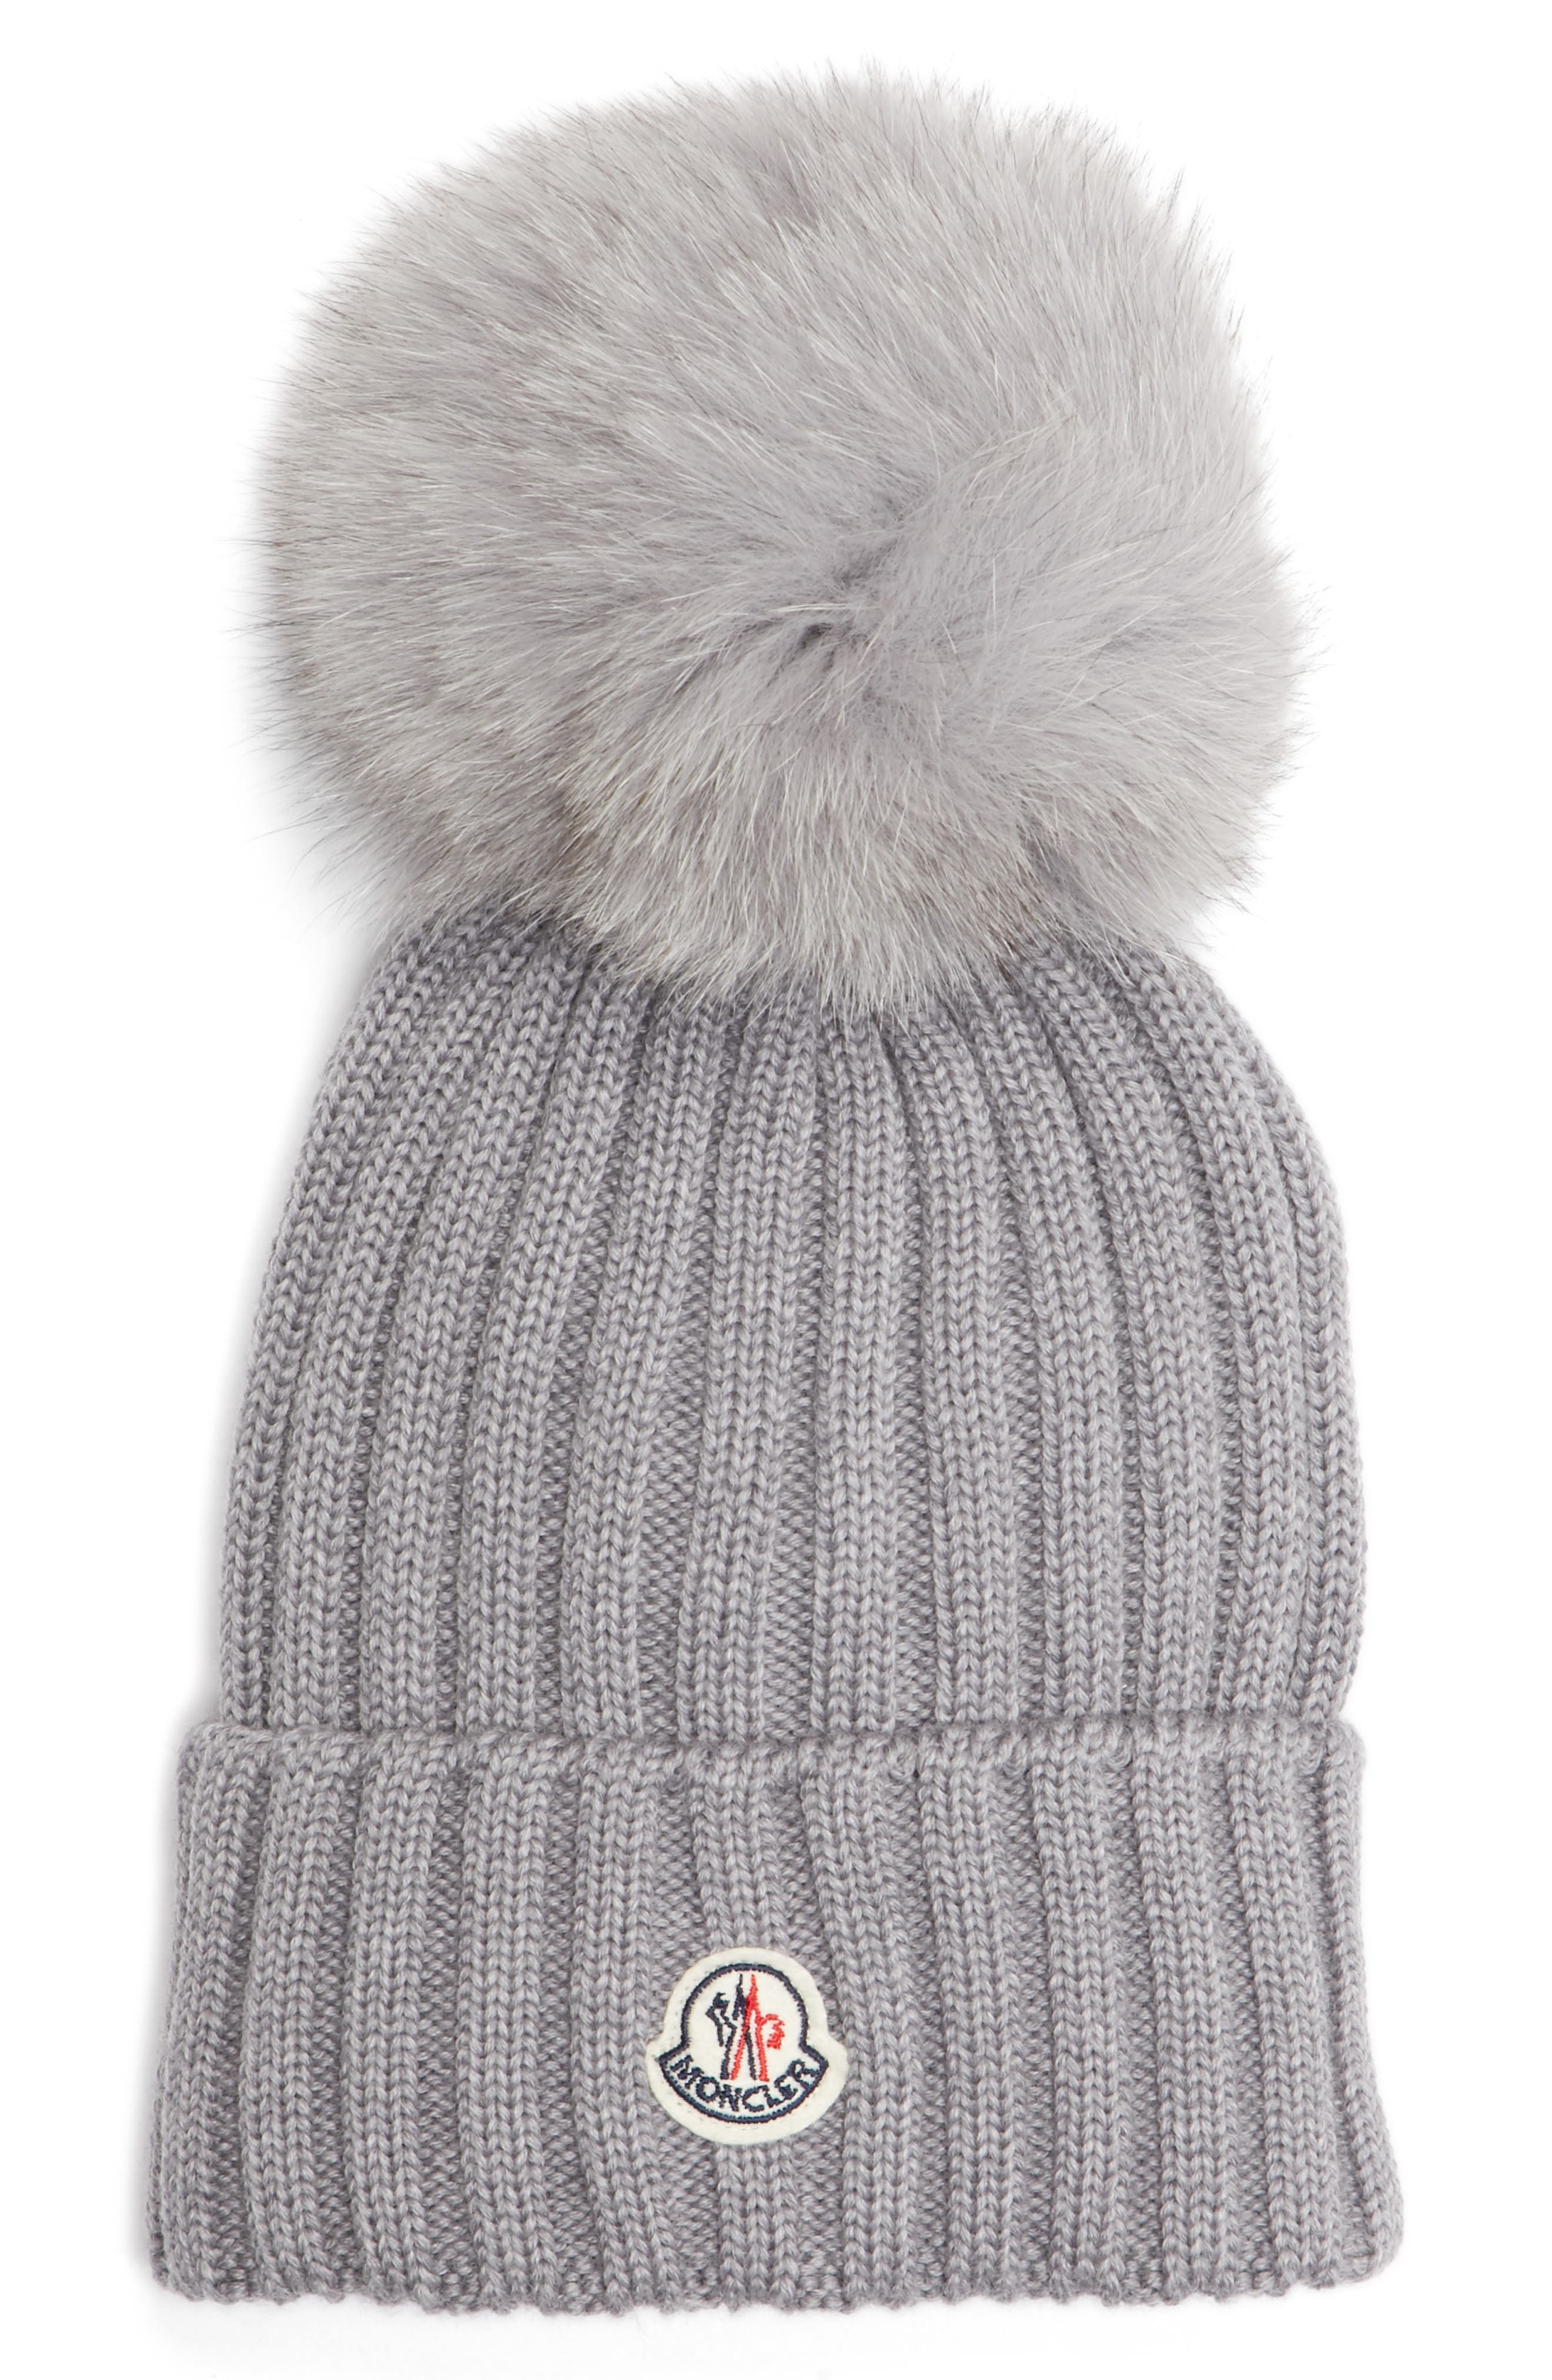 quality design a3a61 5df79 Beanies for Women   Nordstrom